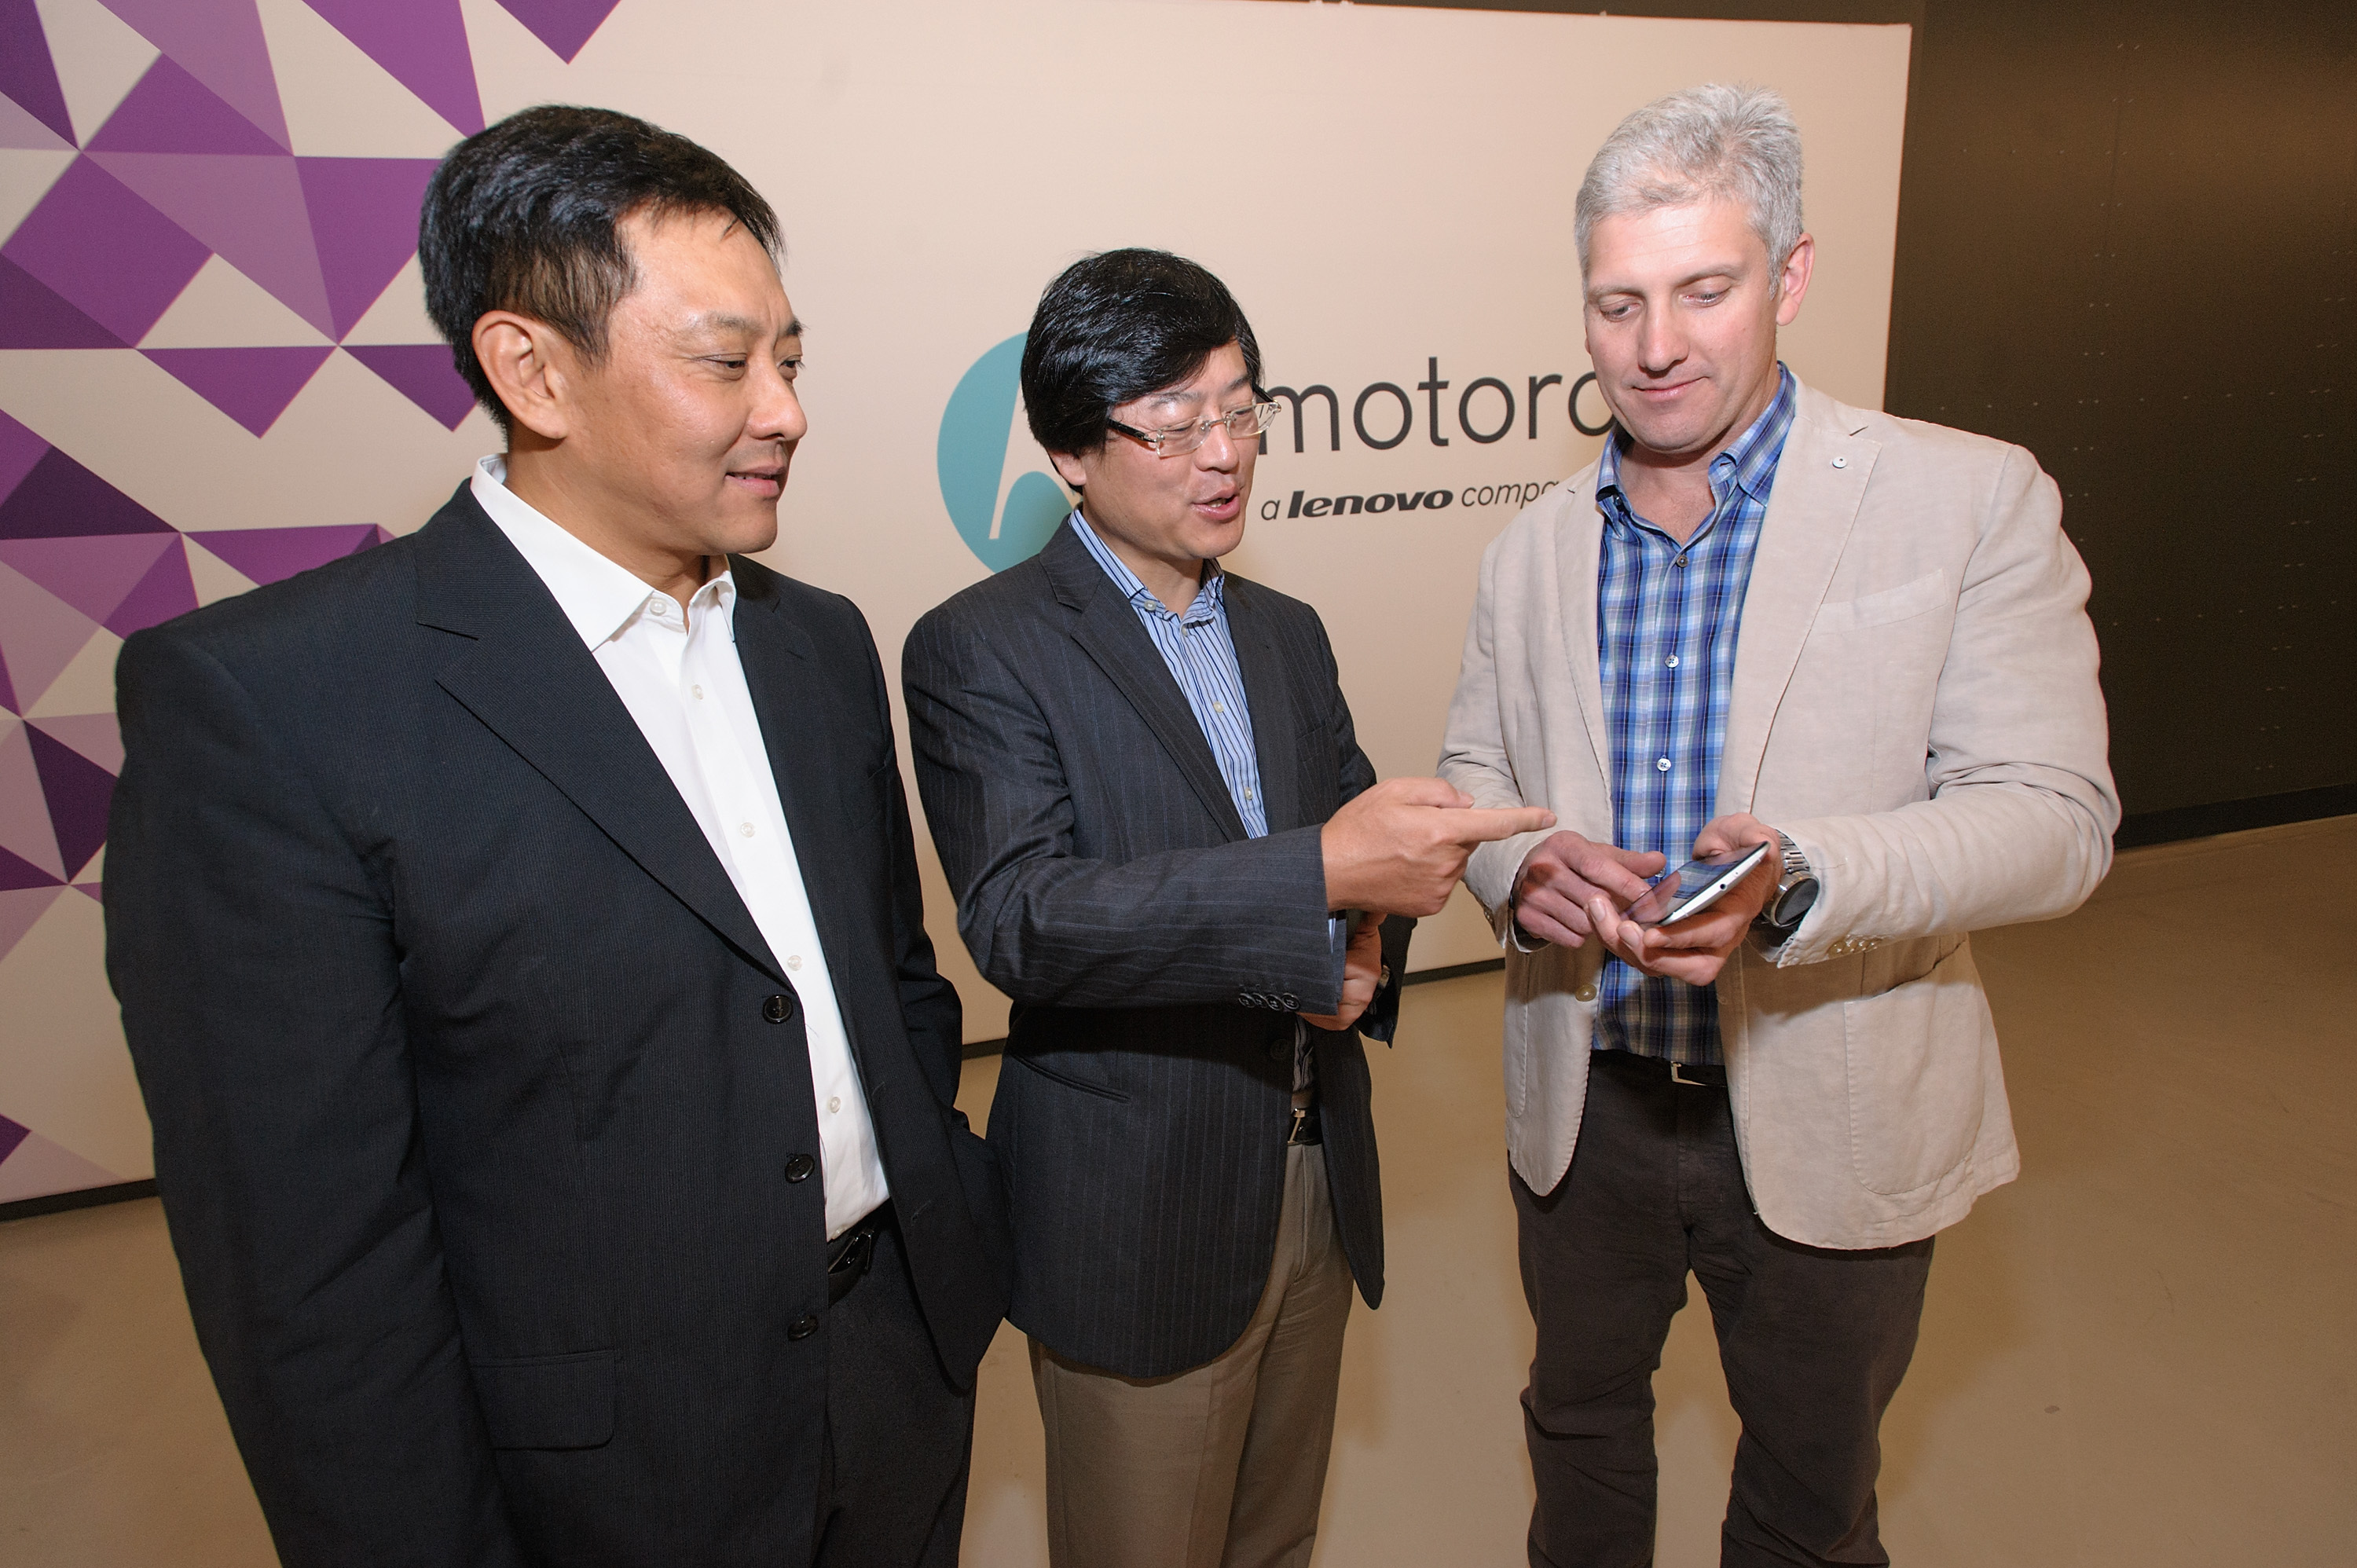 (from left to right) Liu Jun, EVP, Lenovo, President Mobile Business Group, Lenovo and Chairman of the Motorola Management Board; Yang Yuanqing, Lenovo Chairman and CEO; and Rick Osterloh, President and COO, Motorola Mobility celebrate the closing of Lenovo's acquisition of Motorola Mobility today. Here Rick Osterloh demonstrates the latest features of the new Nexus 6 smartphone in front of the company's new logo. (Photo: Business Wire)